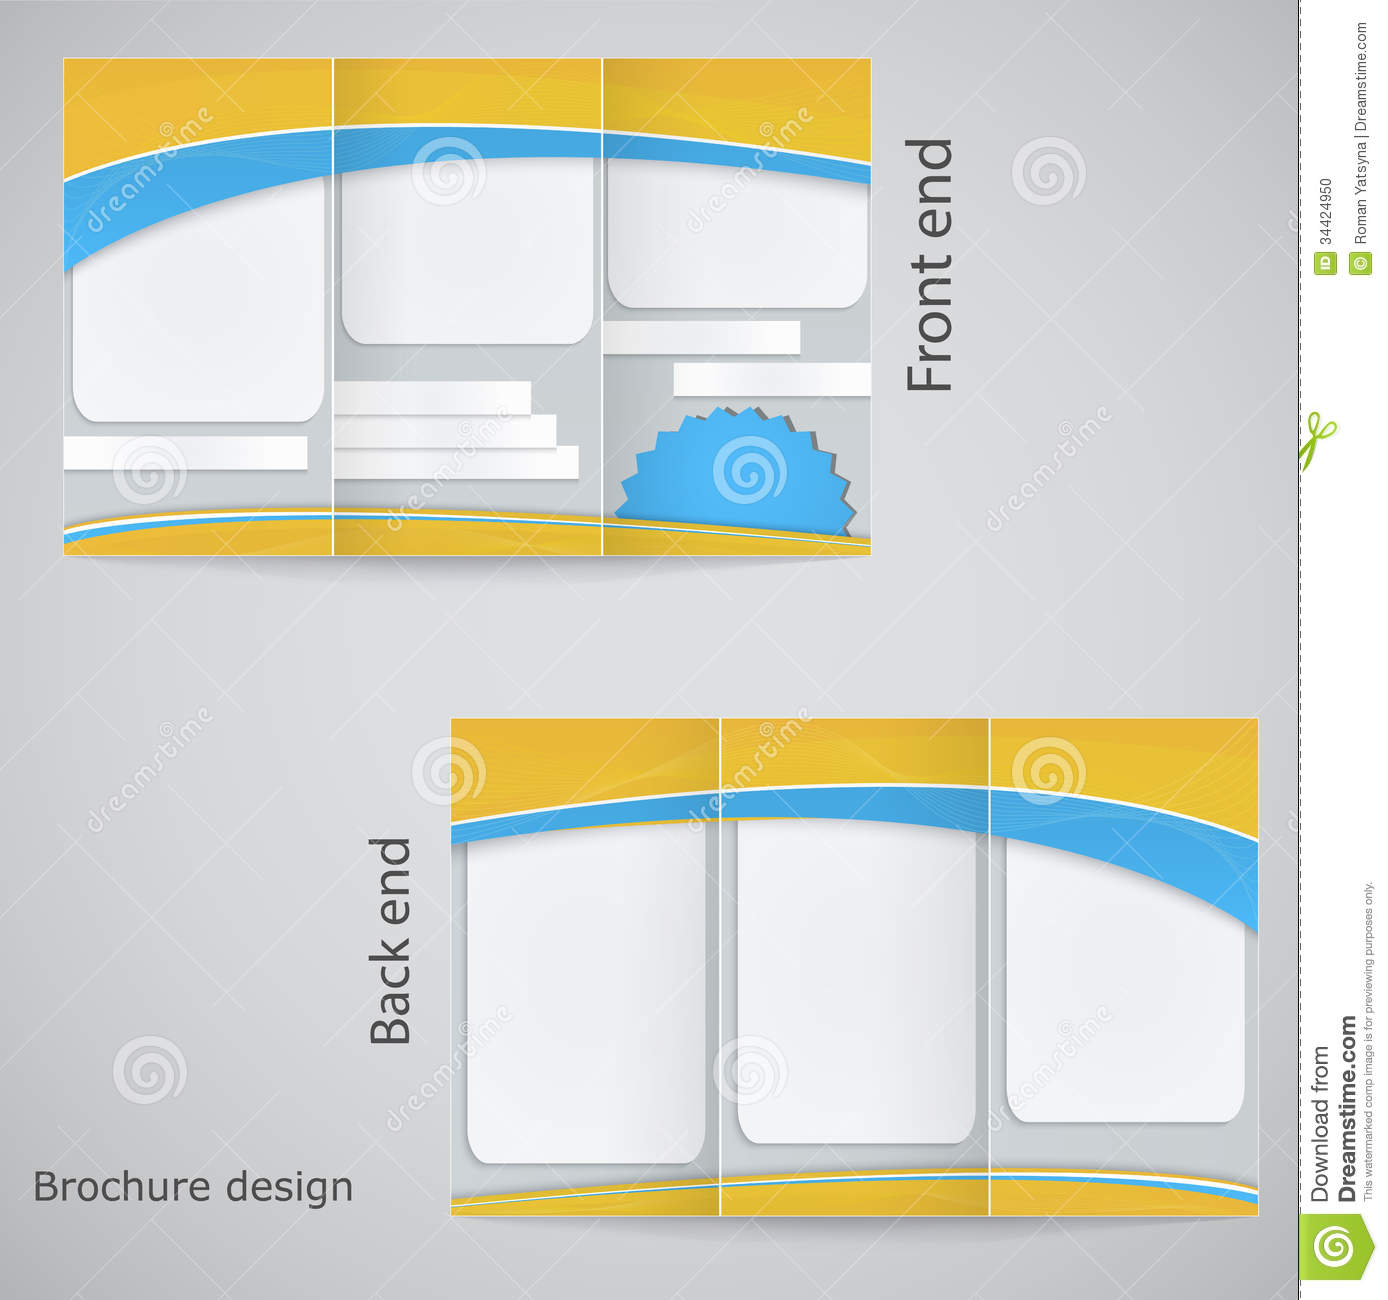 brochure samples templates - tri fold brochure design stock vector image of branding